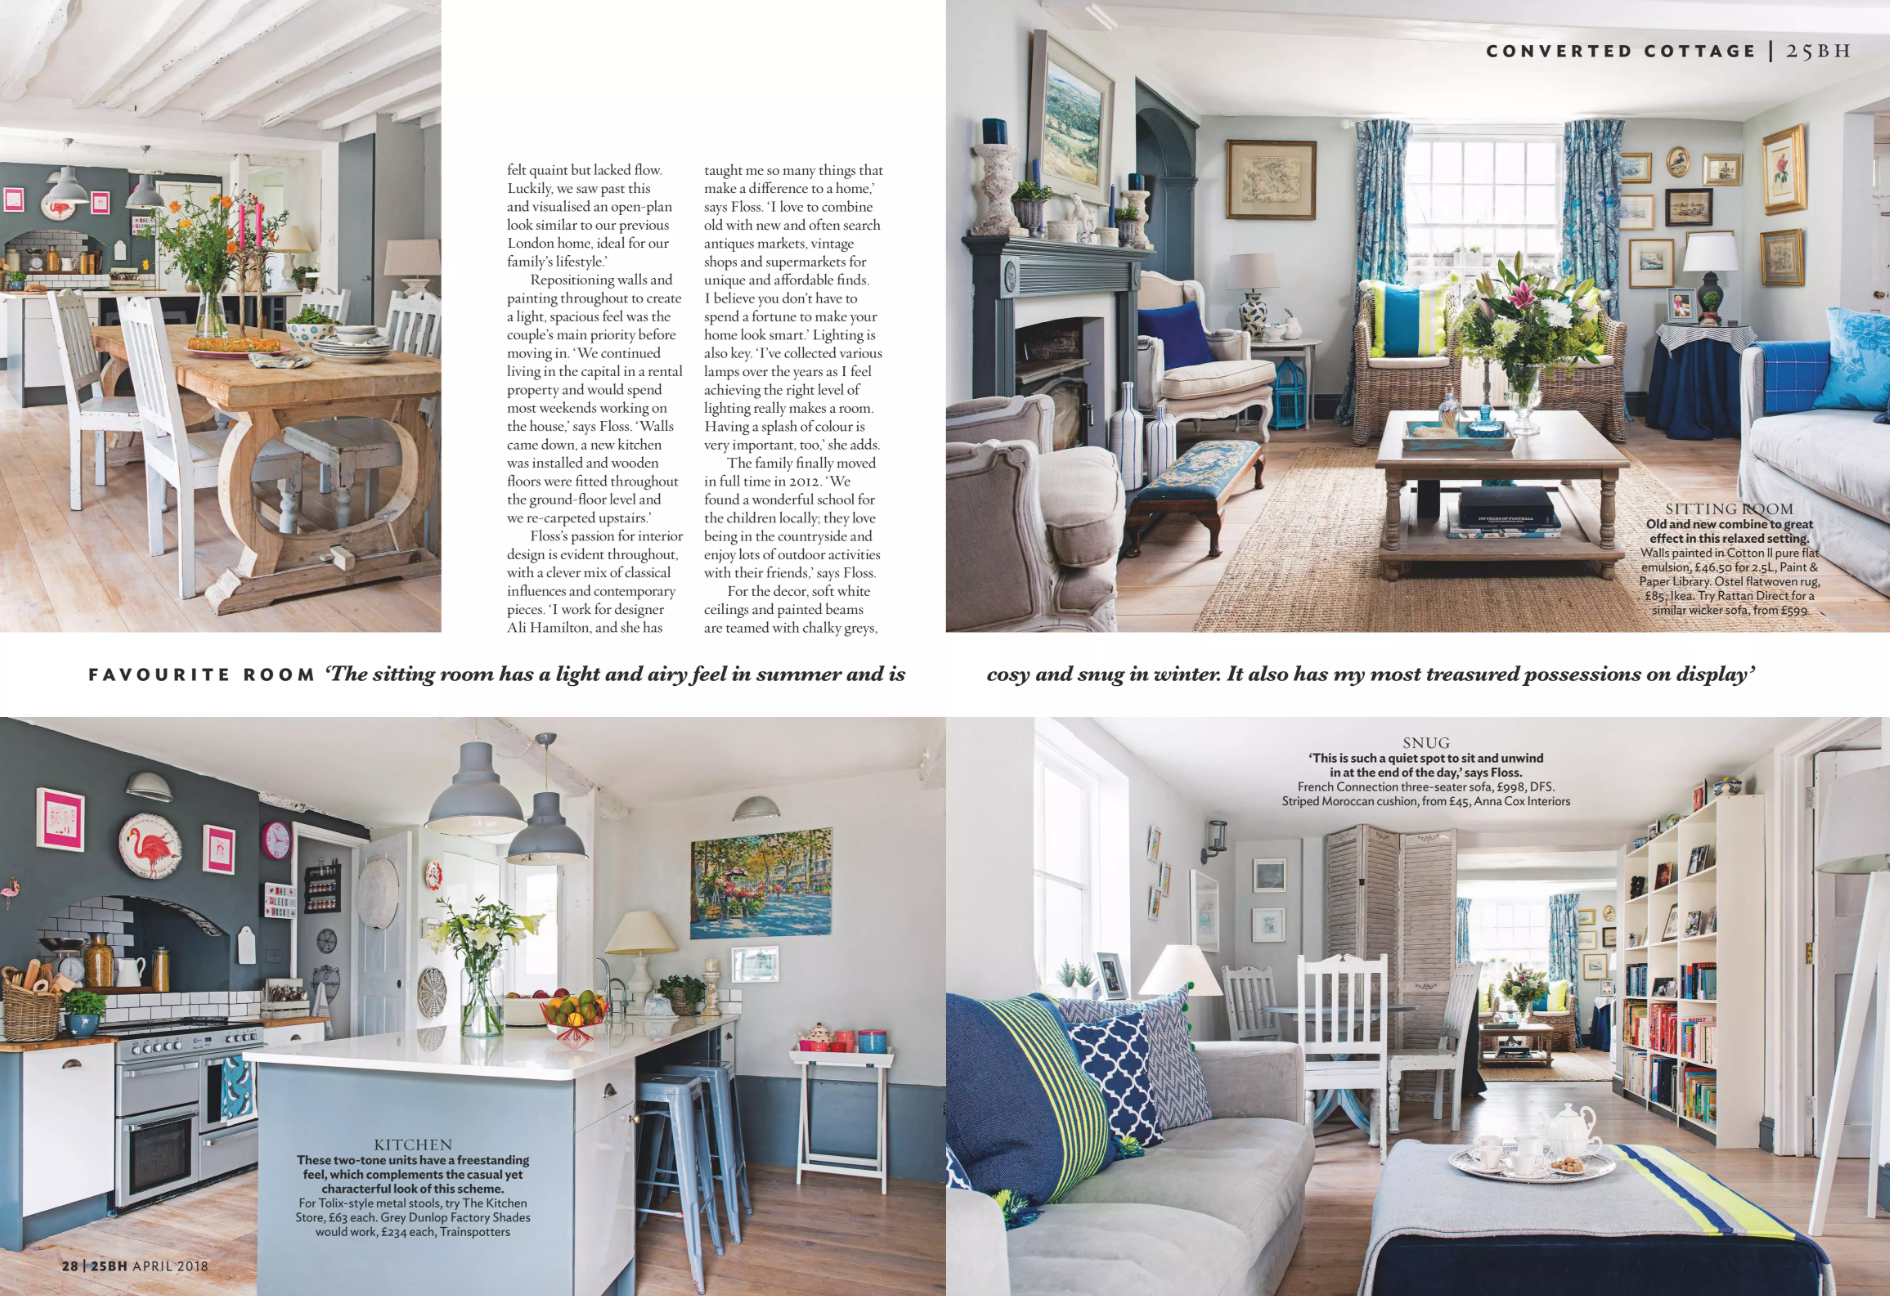 AnnaCoxCushions_Press_25BeautifulHomes_0418-3.png